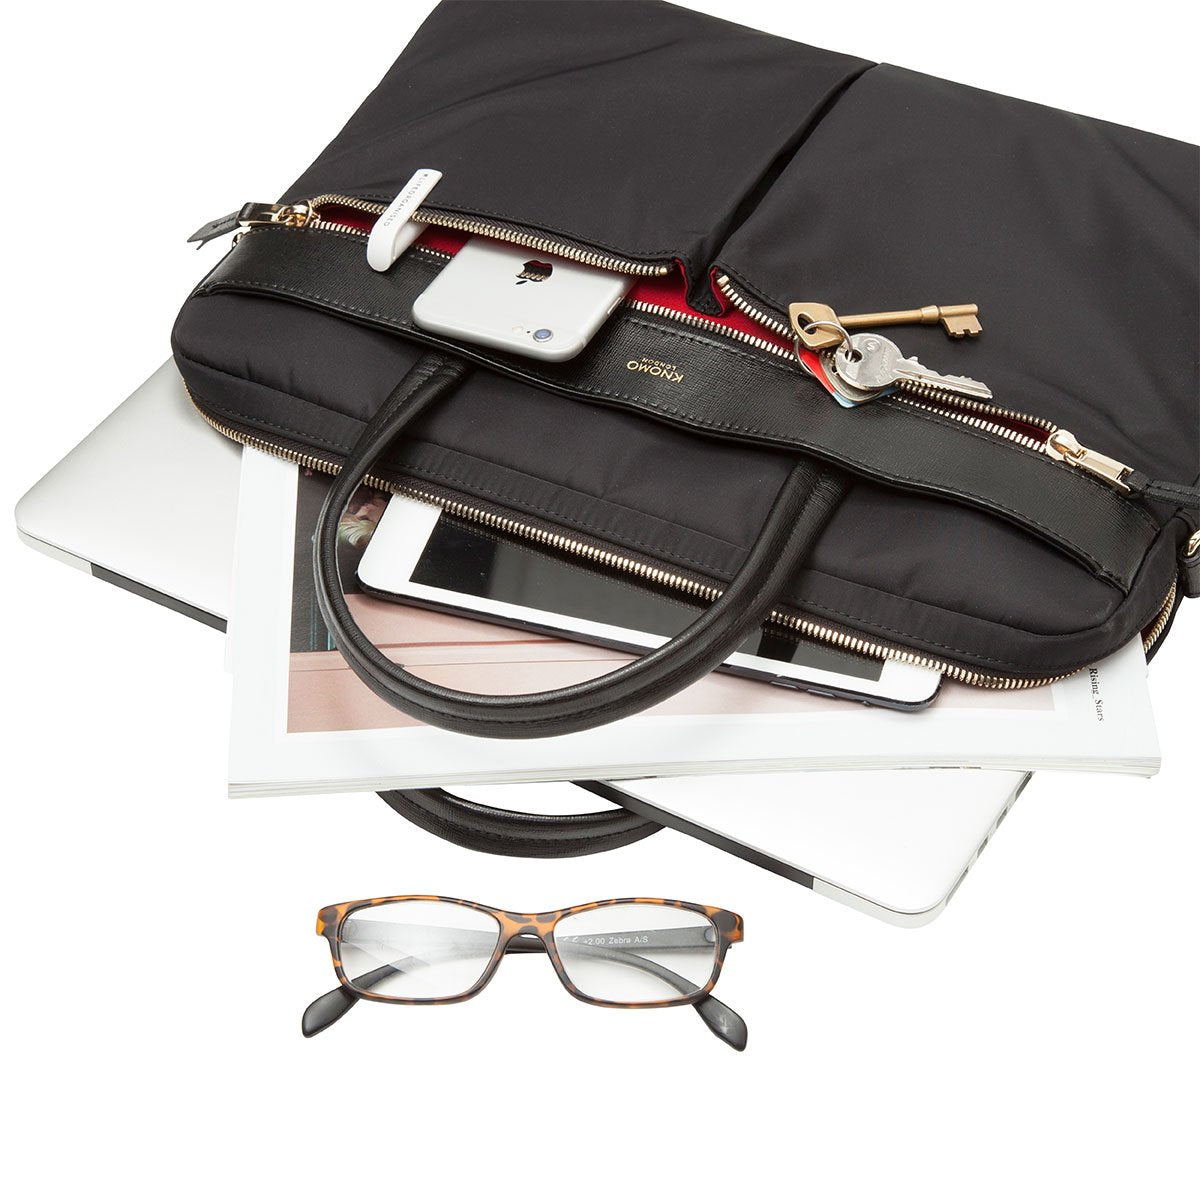 "KNOMO Hanover Laptop Briefcase Laying Down With Items 14"" -  Black 